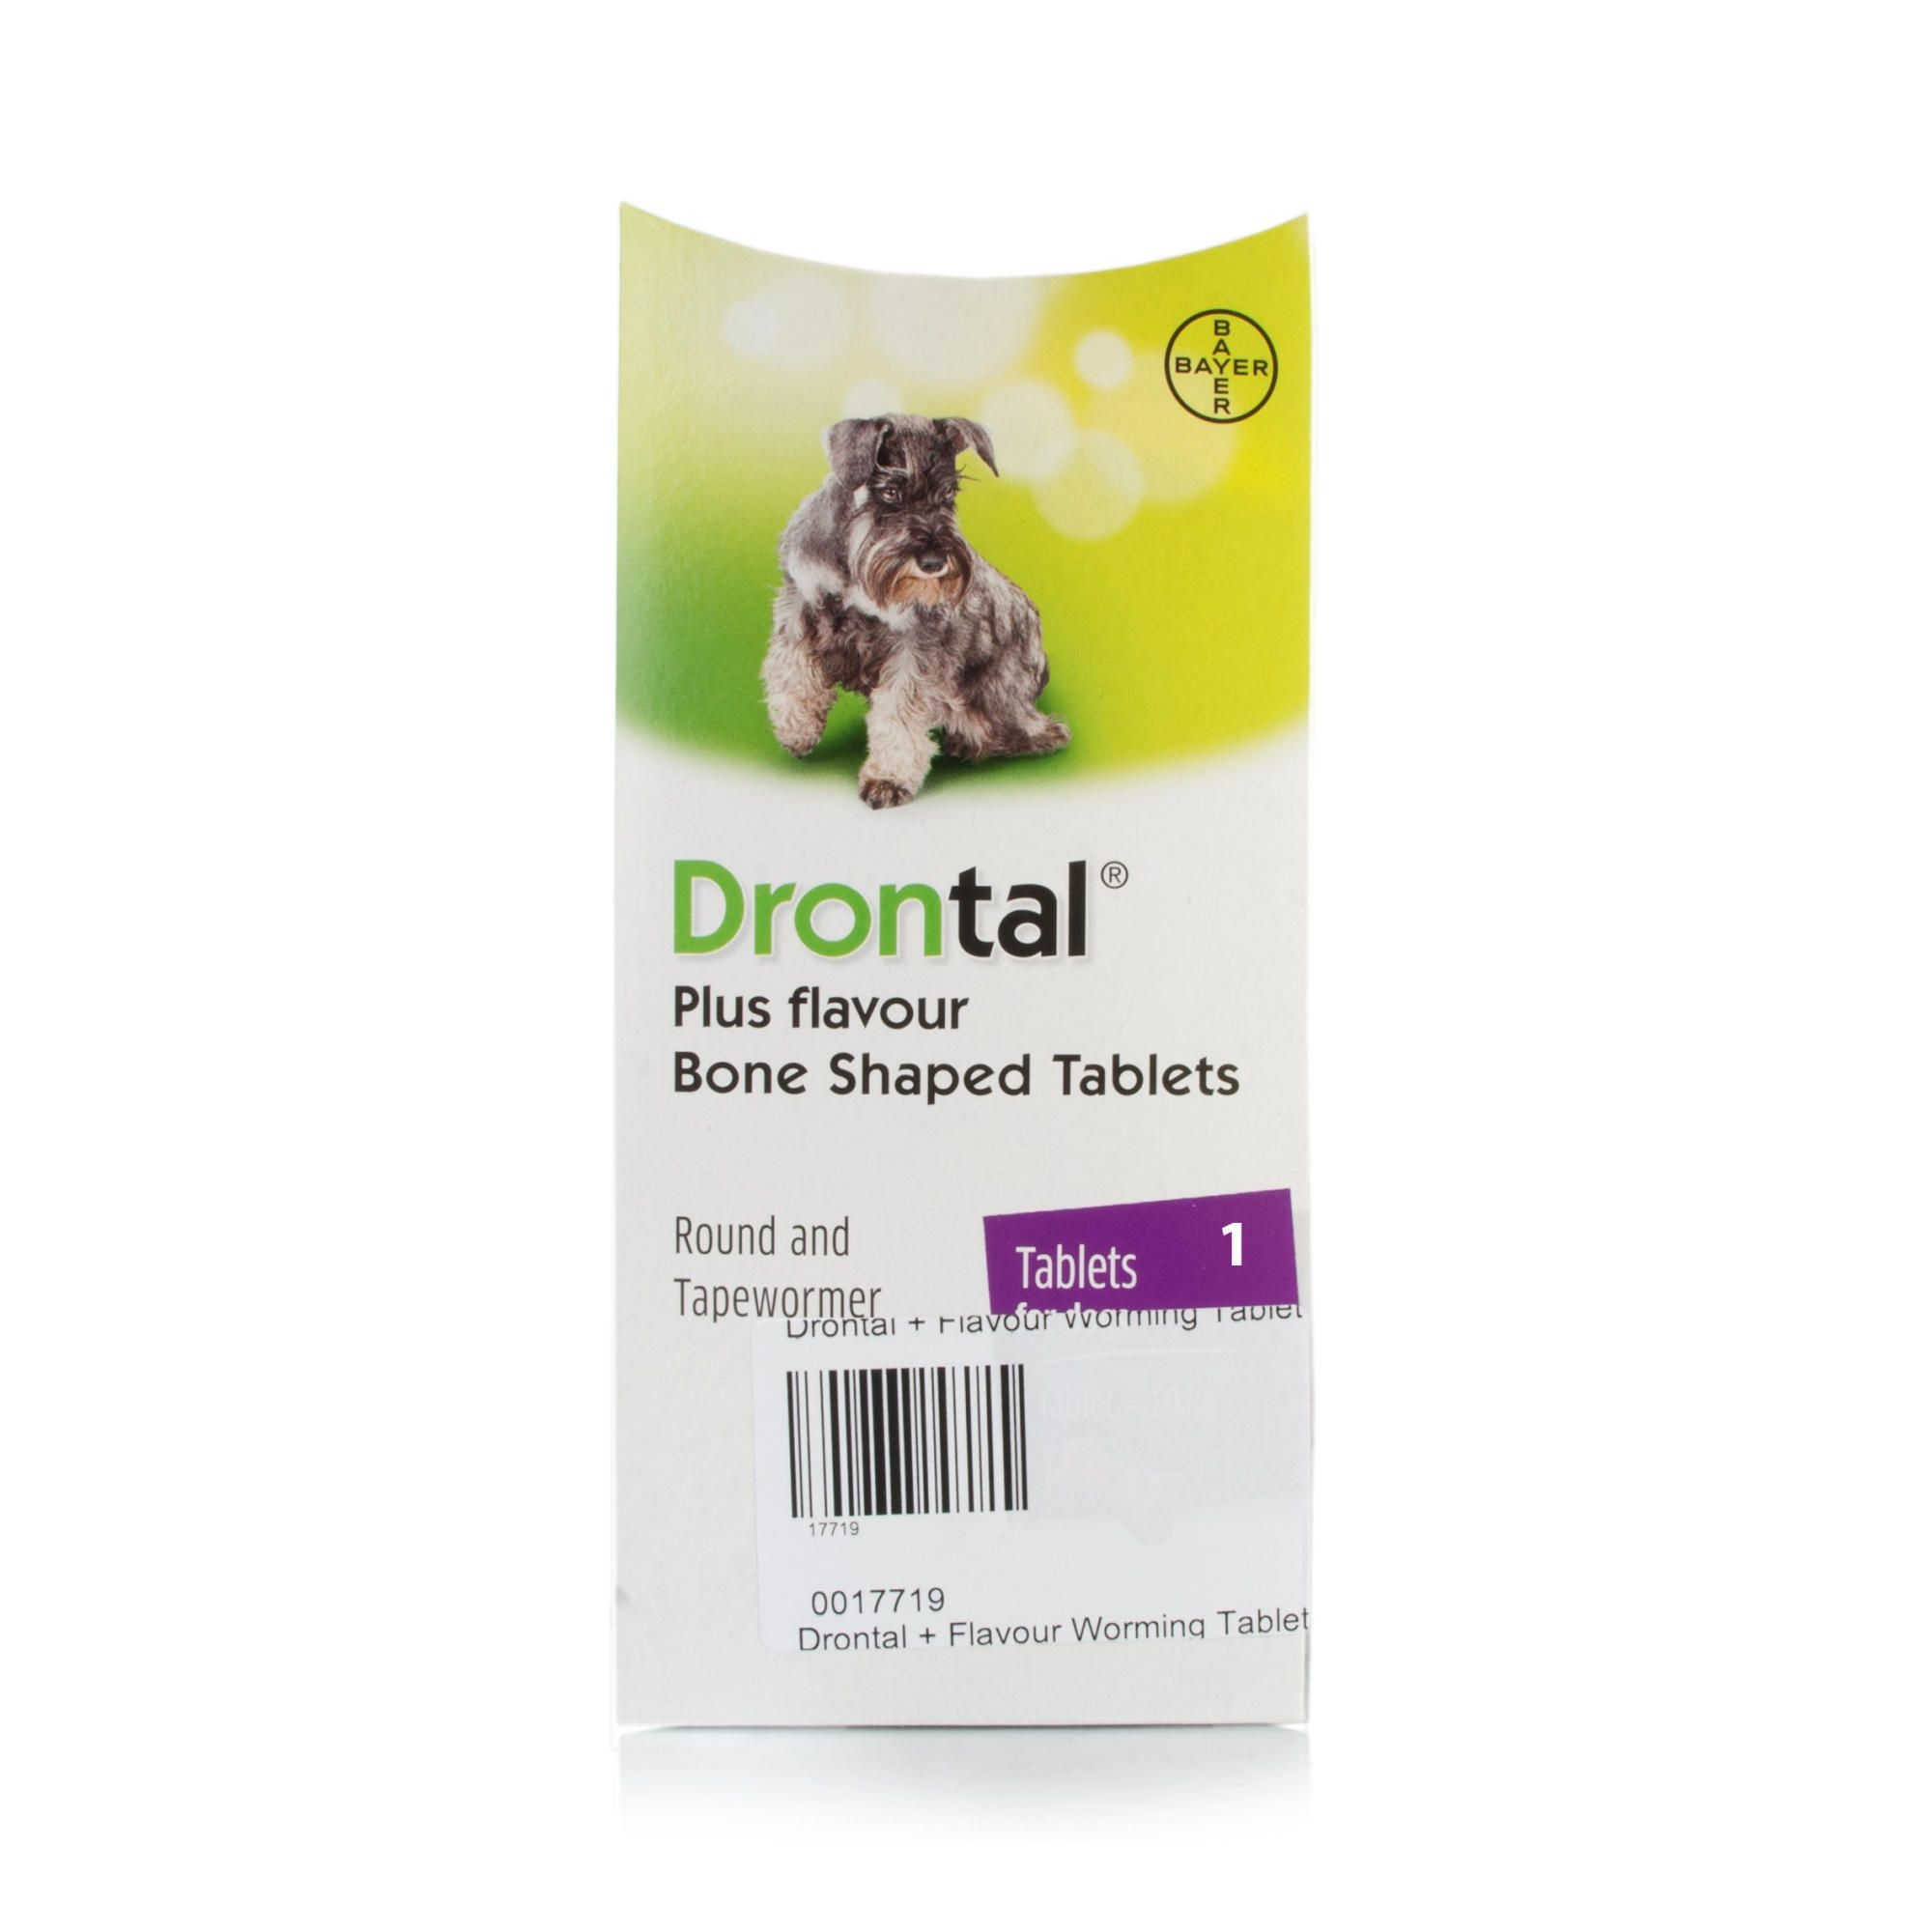 Drontal Tasty Dog Bone Shaped Wormer Tablet Intestinal Parasites Dog Bones Tasty